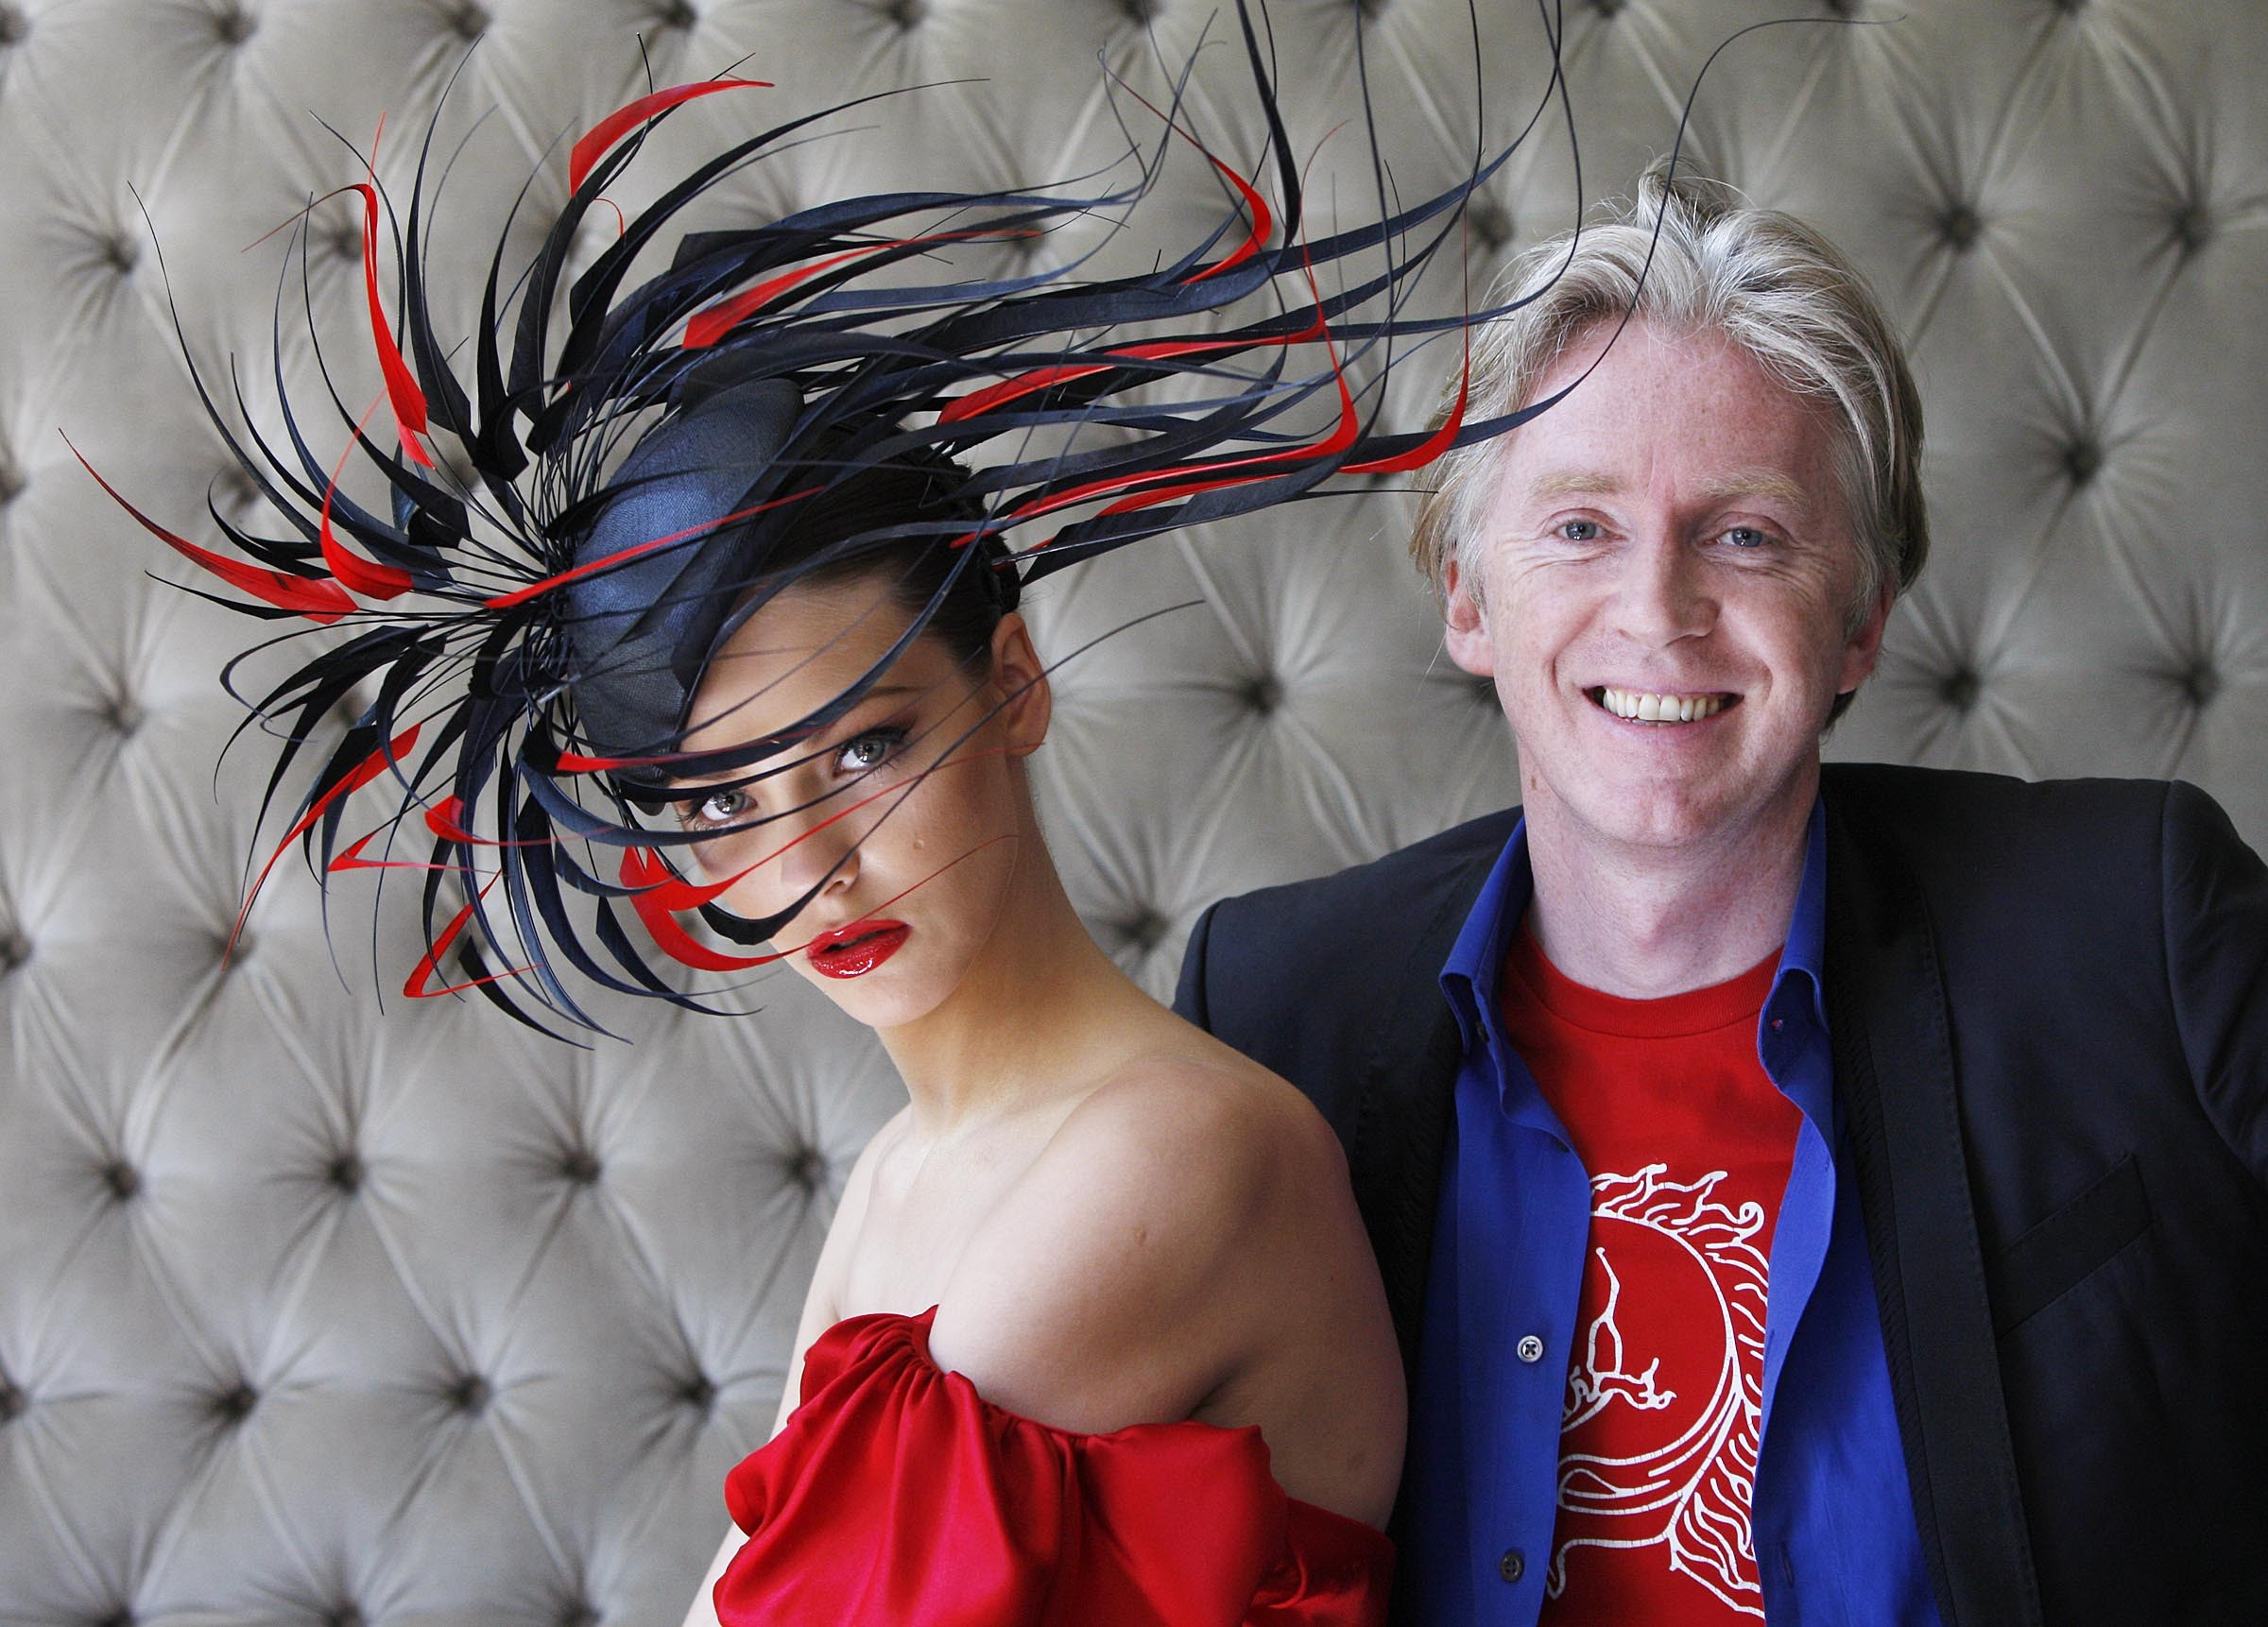 NO REPRO FEE.. Pictured is internationally renowned Irish designer, Philip Treacy with model Klaudia Molenda unveiling his latest creation inspired by Lyons Gold Blend tea on Tuesday 2nd June 2009 in the dylan Hotel, Dublin. The one of a kind hat was specially created to celebrate the rich qualities of Lyons Gold Blend, which new research has revealed as the best tasting gold blend tea, out performing competitors on taste, colour, flavour, appearance and mouth feel in both blind and branded research. The hat will be on display at the Lyons Gold Blend tent at Taste of Dublin 'where great taste meets great style' from 11th June 2009. One lucky person will win the bespoke Philip Treacy creation as Irish people will be able to enter a draw at the Lyons Gold Blend tent and online at www.lyonsgoldblend.ie. Photographer Robbie Reynolds.